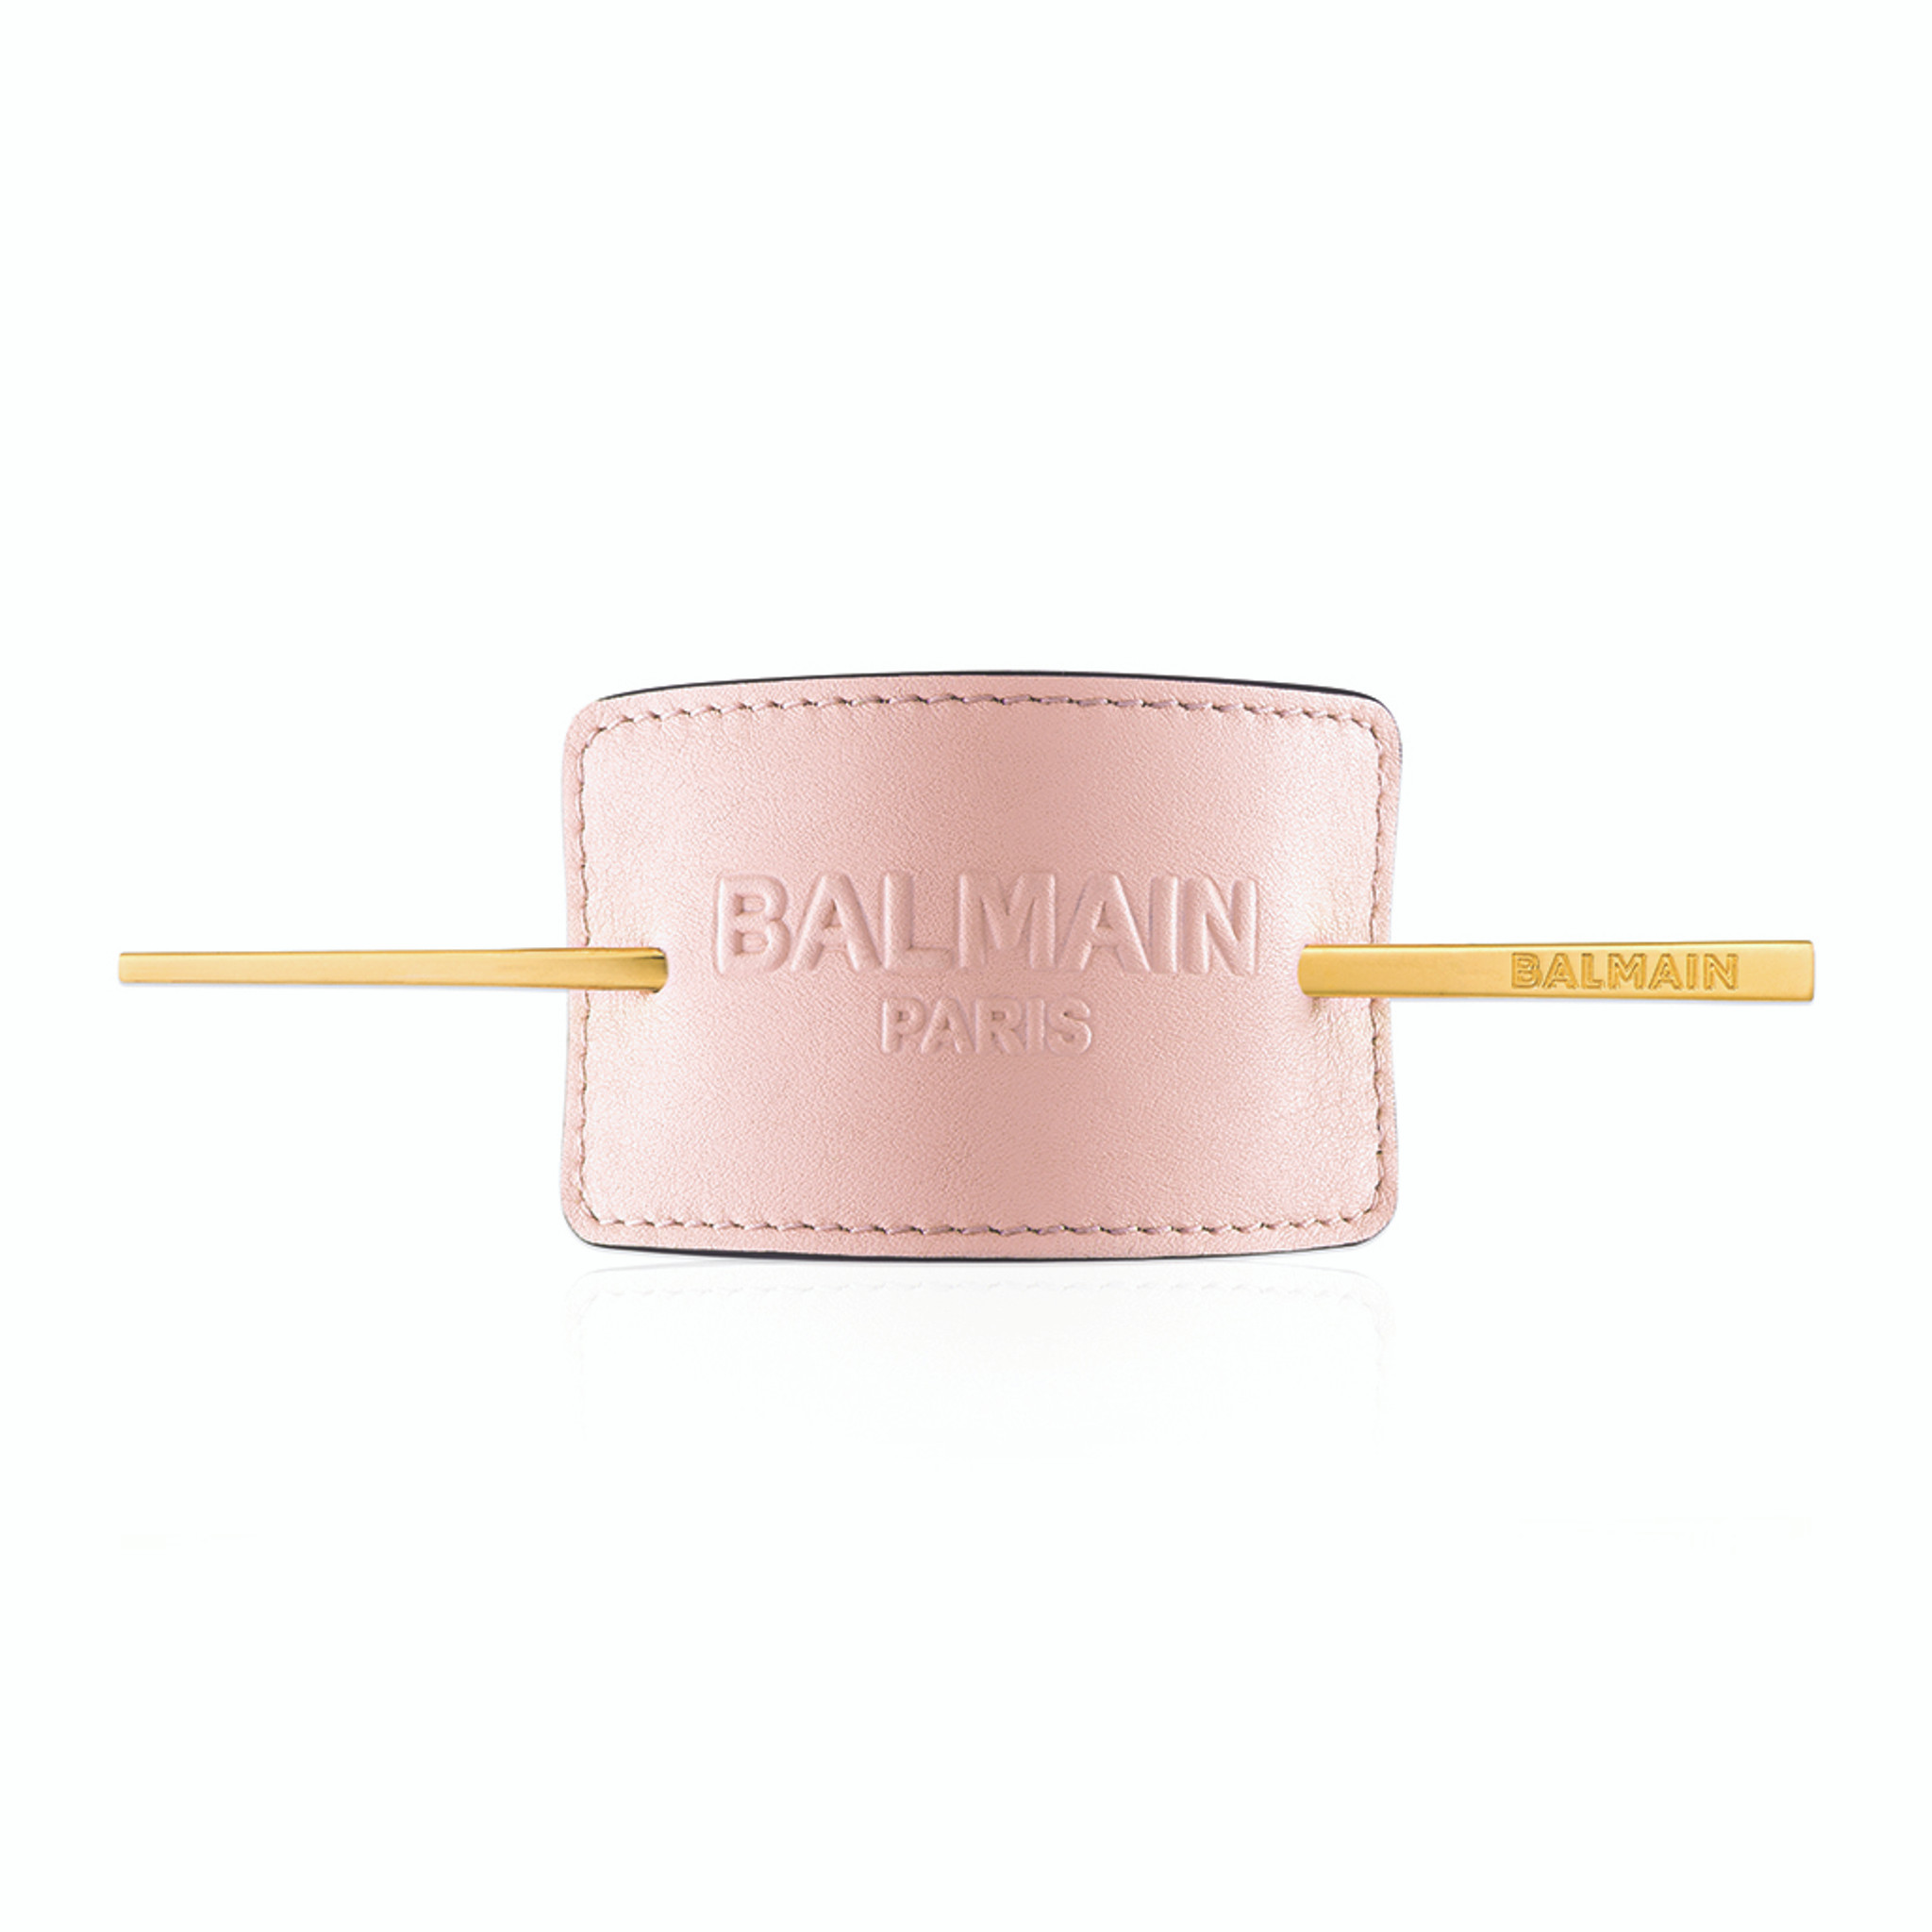 PASTEL PINK LUXURY HAIR BARRETTE (Limited Edition SS20)